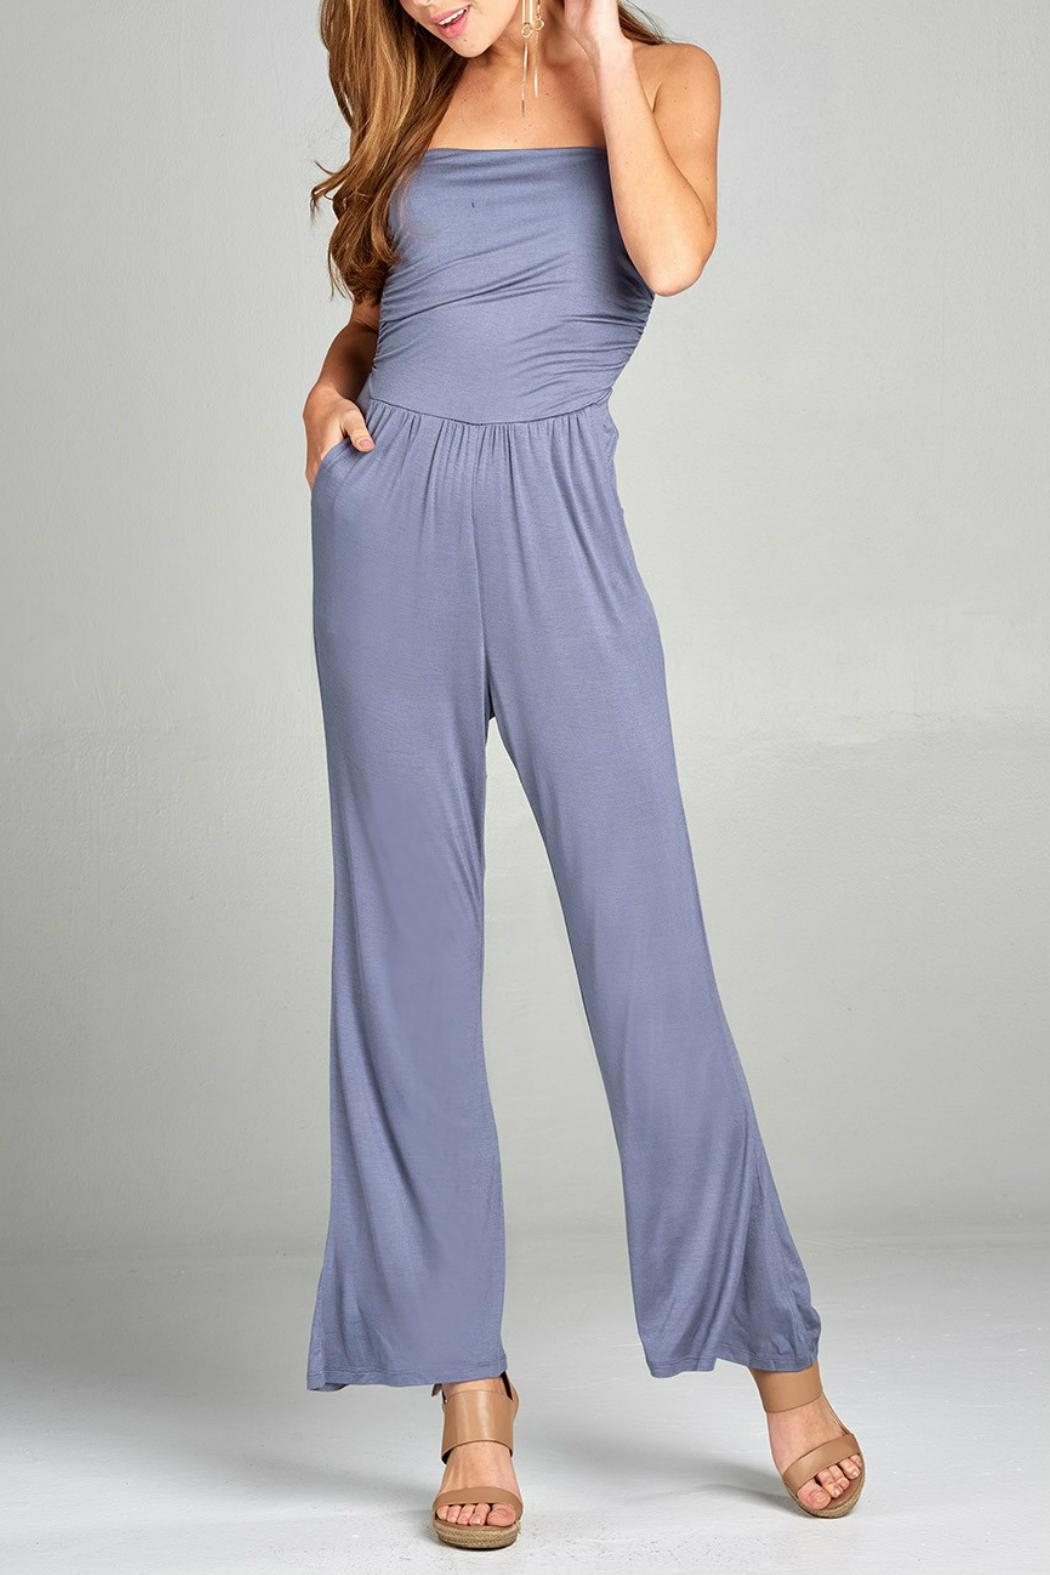 Minx Strapless Wideleg Jumpsuit - Front Cropped Image